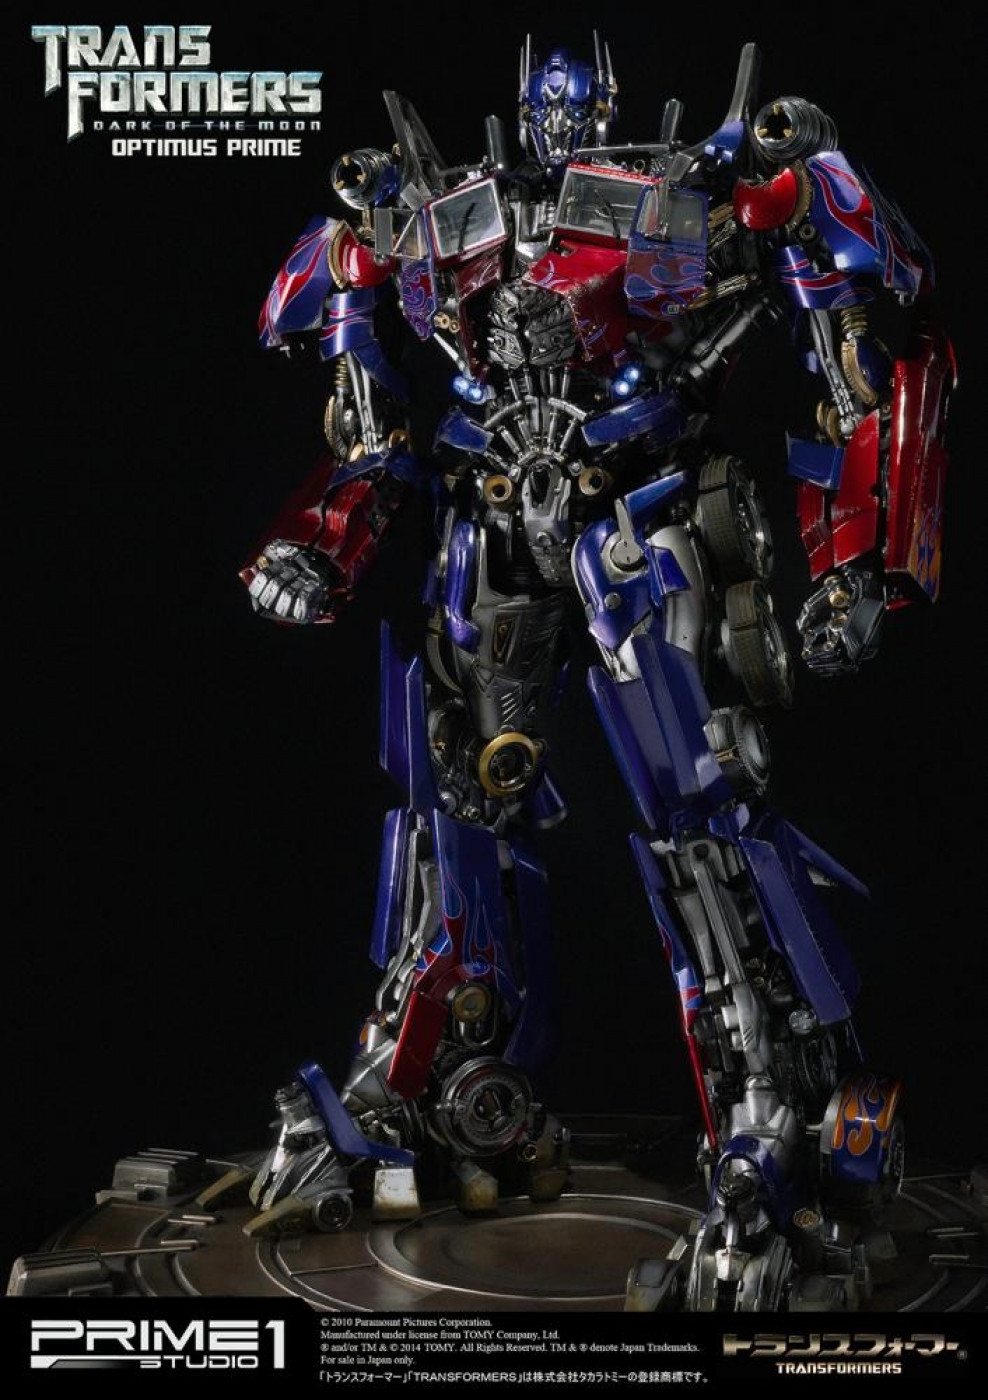 museum masterline transformers: dark of the moon optimus prime brute